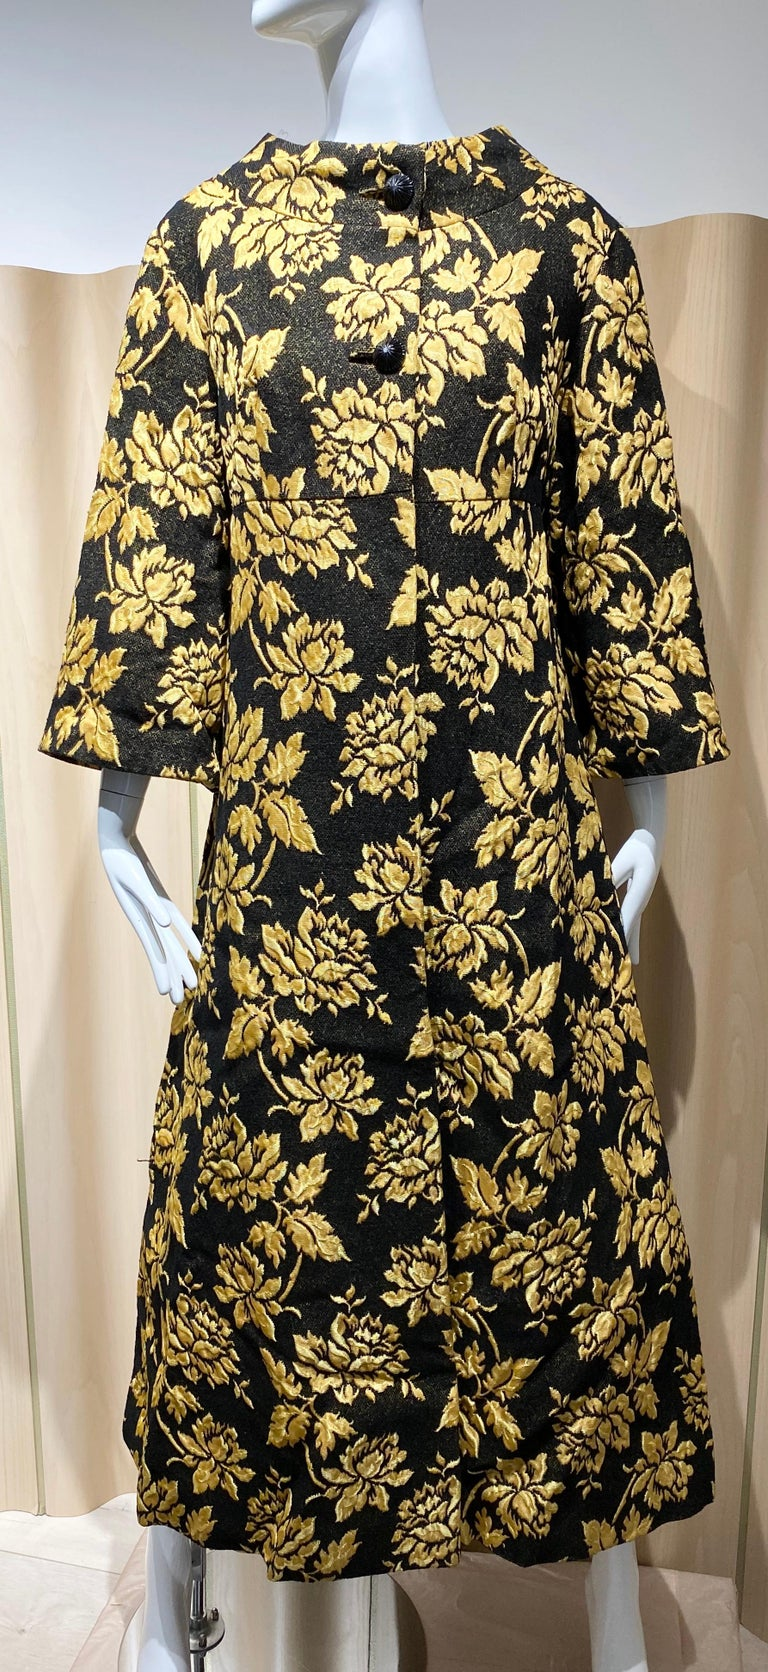 1960s Cocktail Coat in Yellow gold flower print in black brocade.  Size: Large